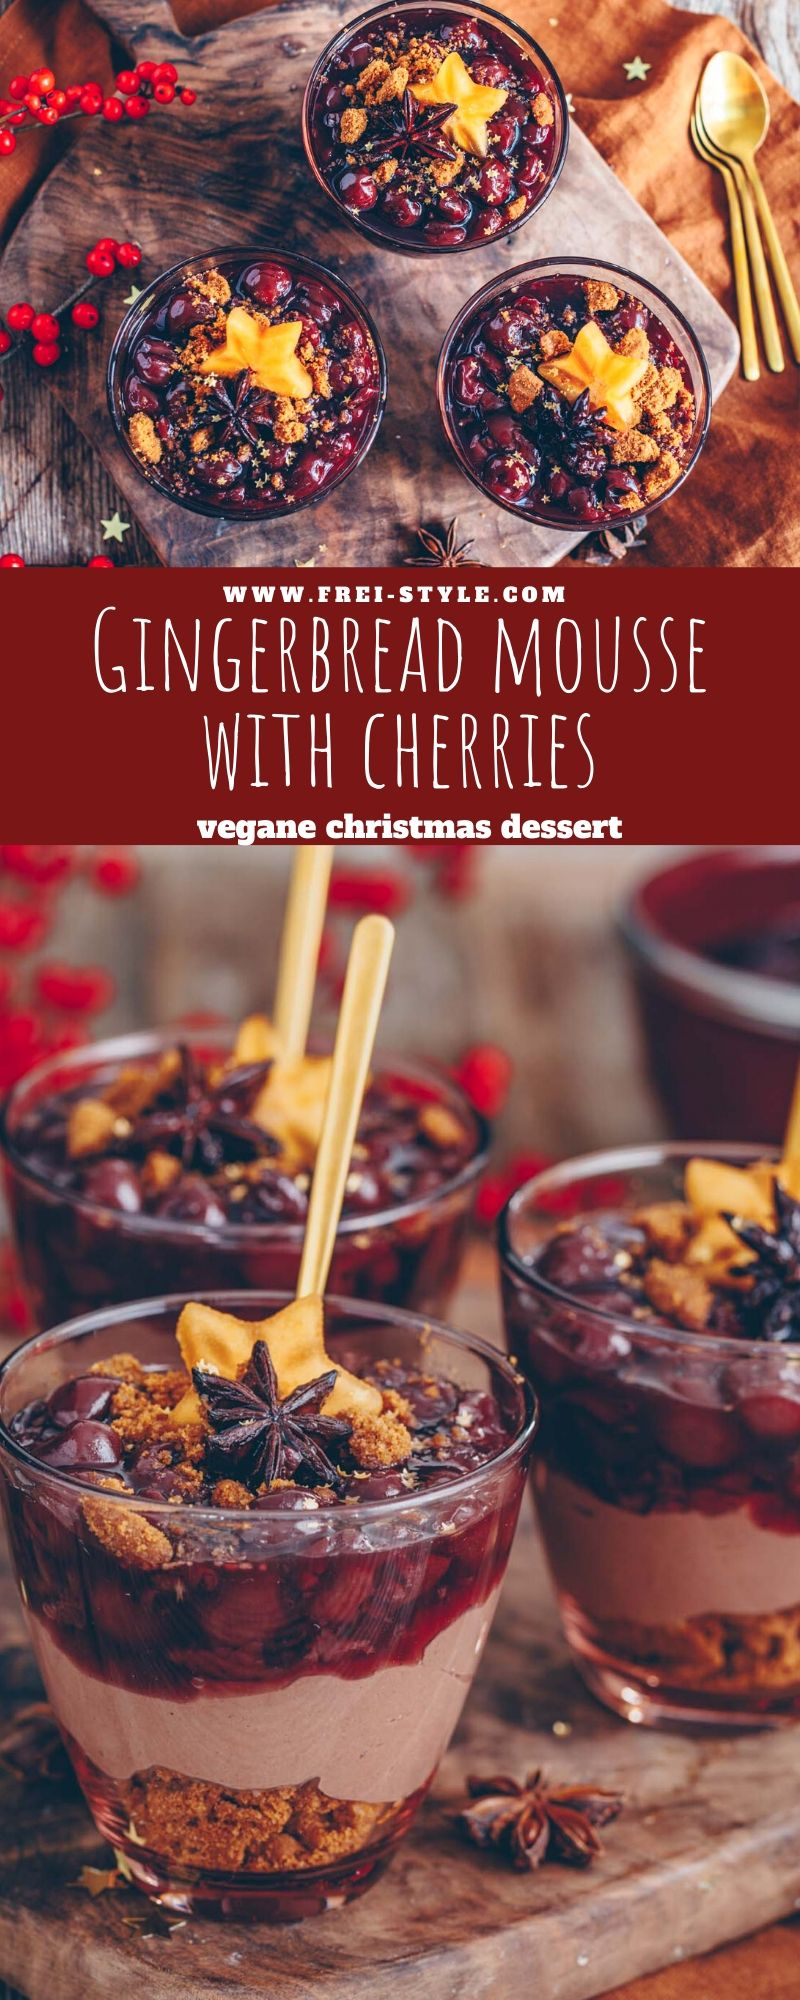 Christmas dessert: Gingerbread mousse with cherries